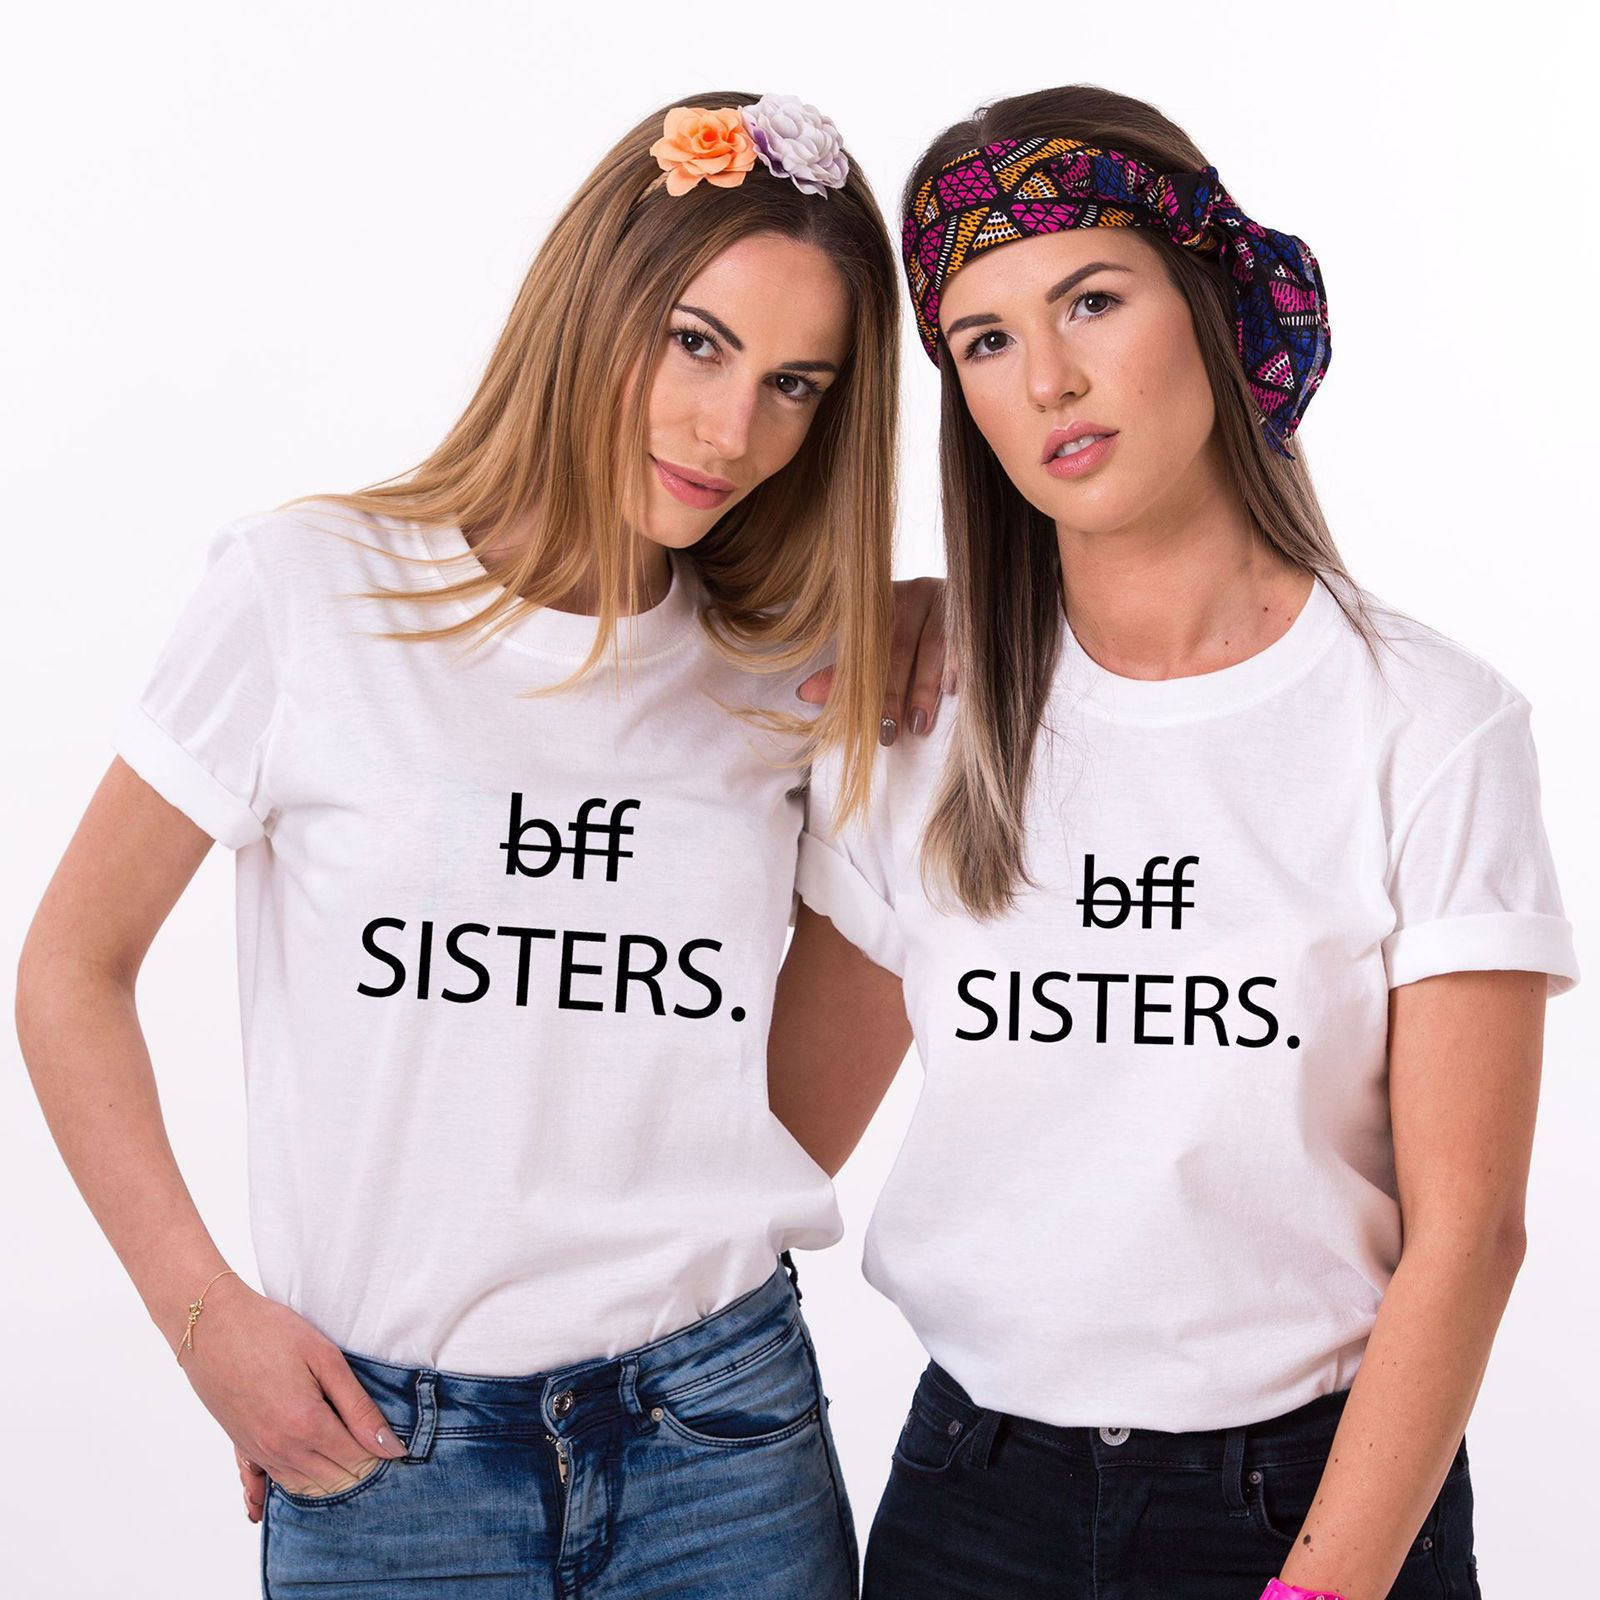 54baac3f Best Friends Sisters Shirts, Bff Matching Outfits, Best Friends Women's  T-Shirts